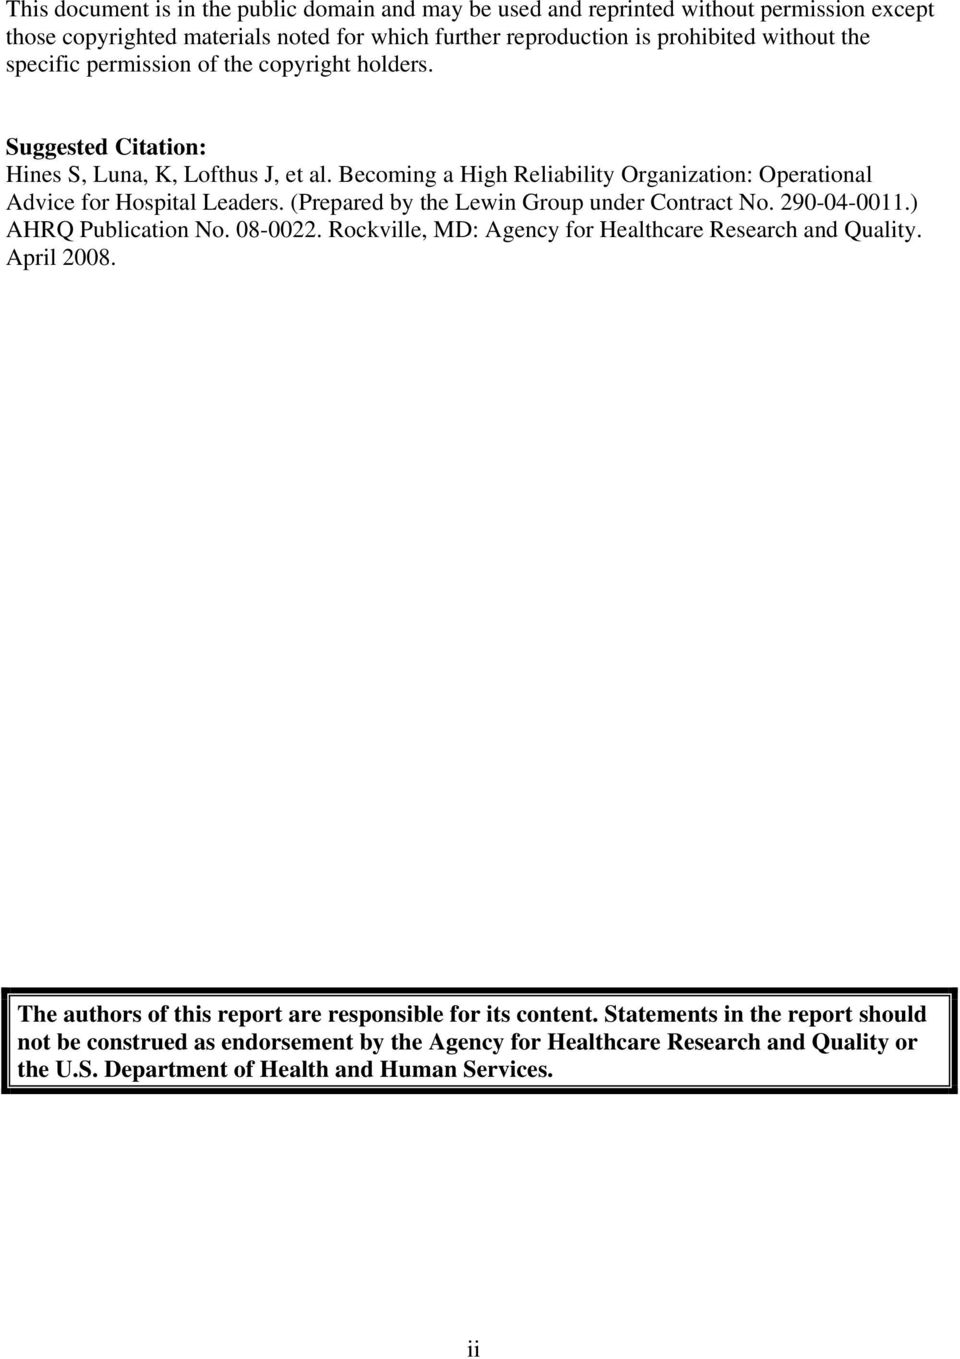 (Prepared by the Lewin Group under Contract No. 290-04-0011.) AHRQ Publication No. 08-0022. Rockville, MD: Agency for Healthcare Research and Quality. April 2008.